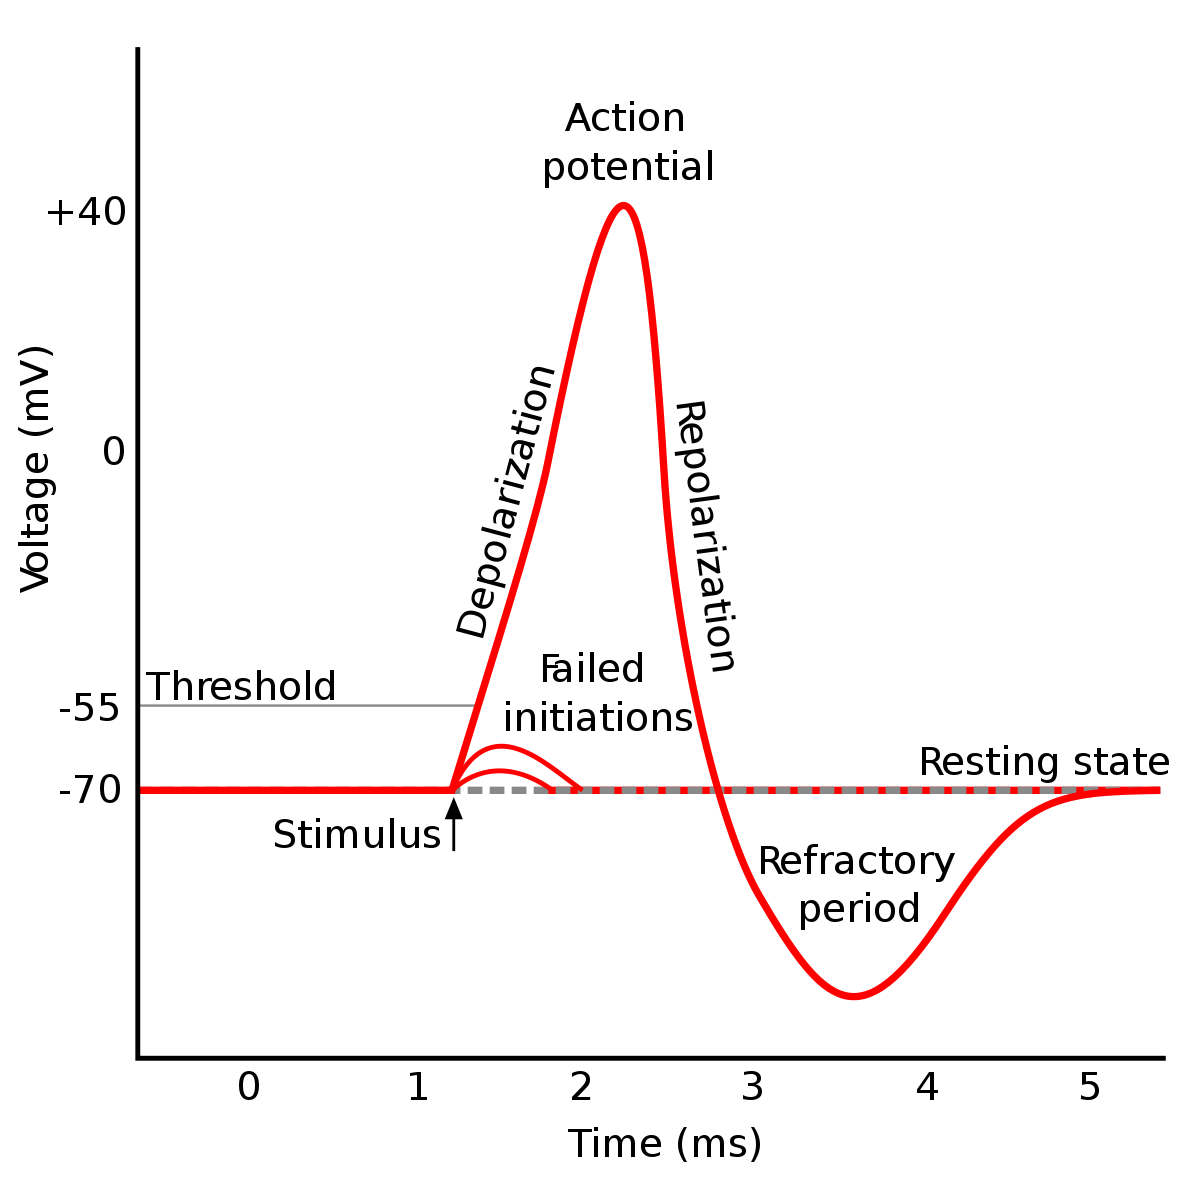 action potential graph에 대한 이미지 검색결과